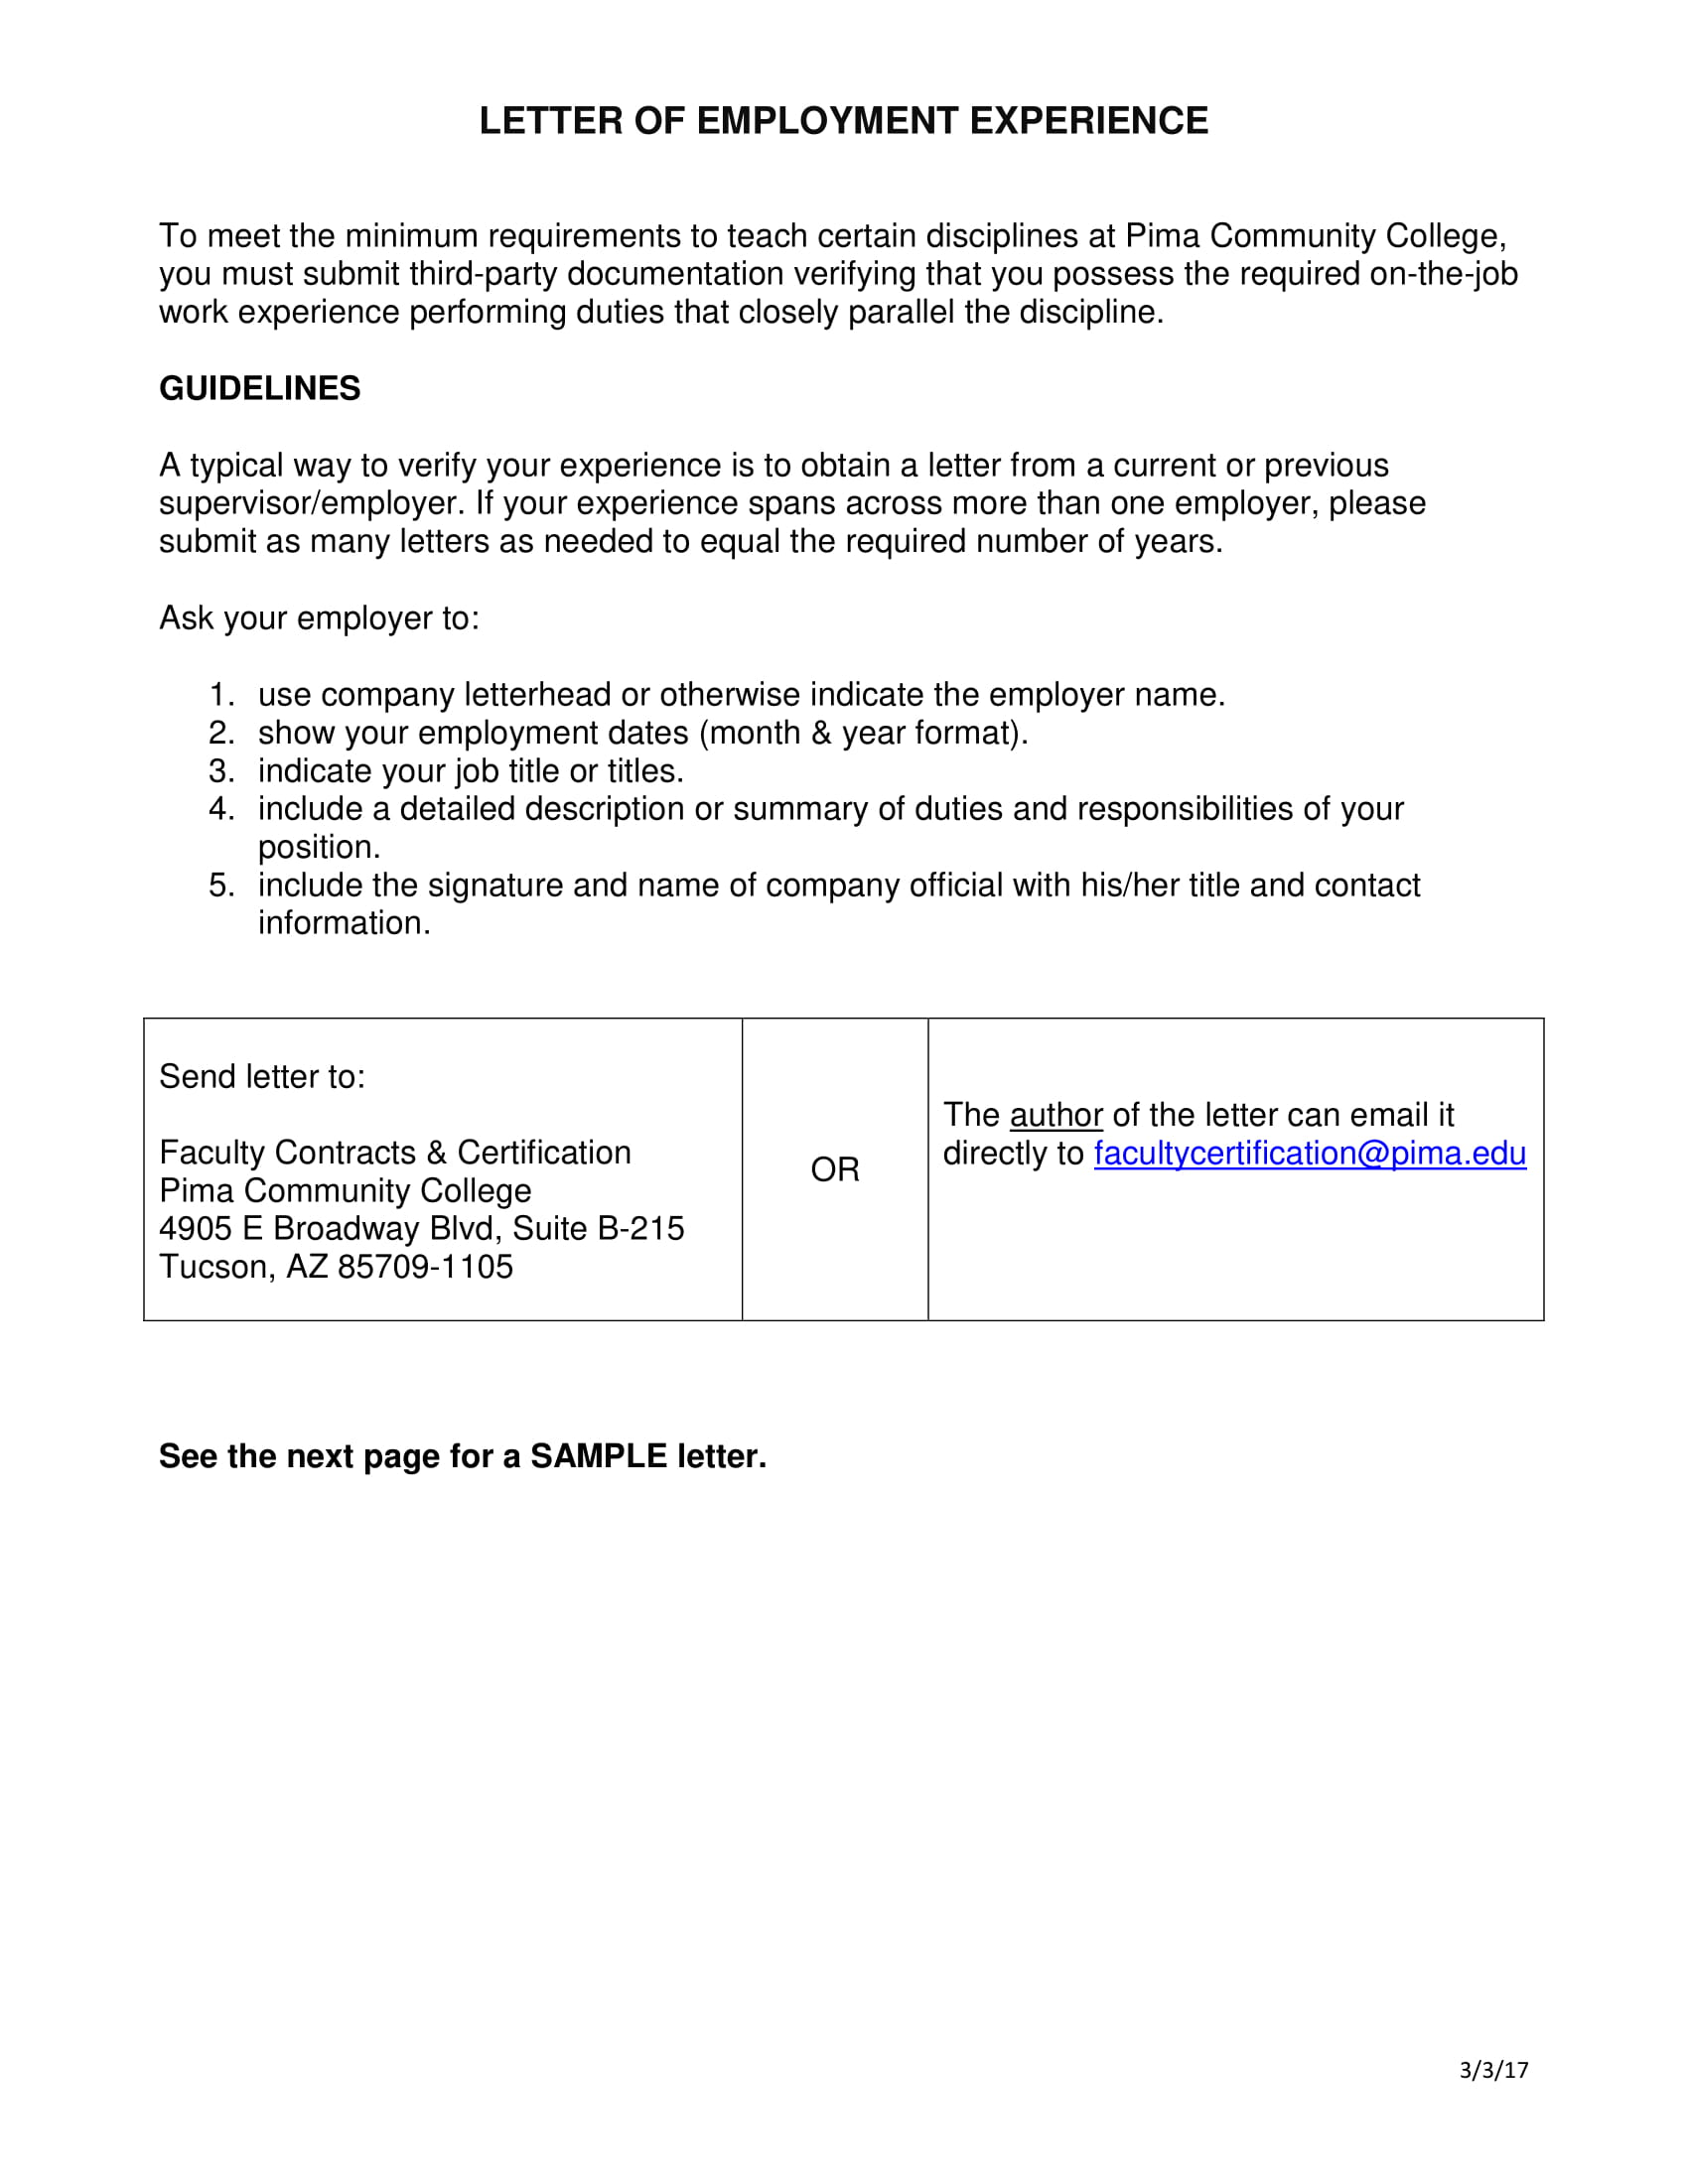 verification letter of employment experience example